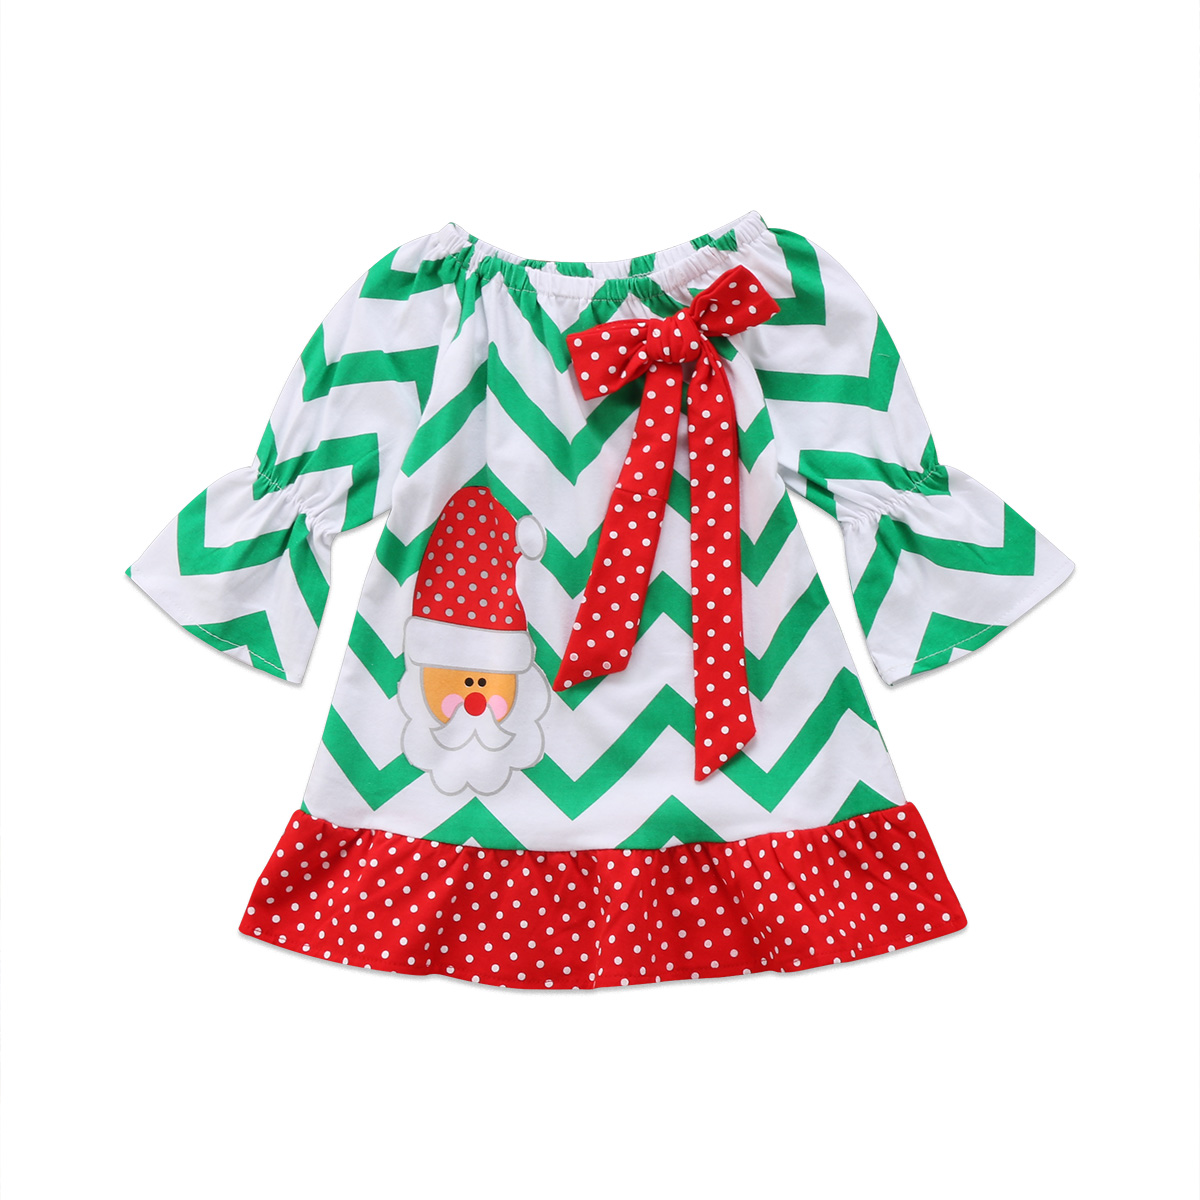 Christmas baby Kids Dress Cartoon santa Claus red green striped Girls dress Xmas Party Dress for new year 2017 photography props christmas candy santa claus snowflake choker dress